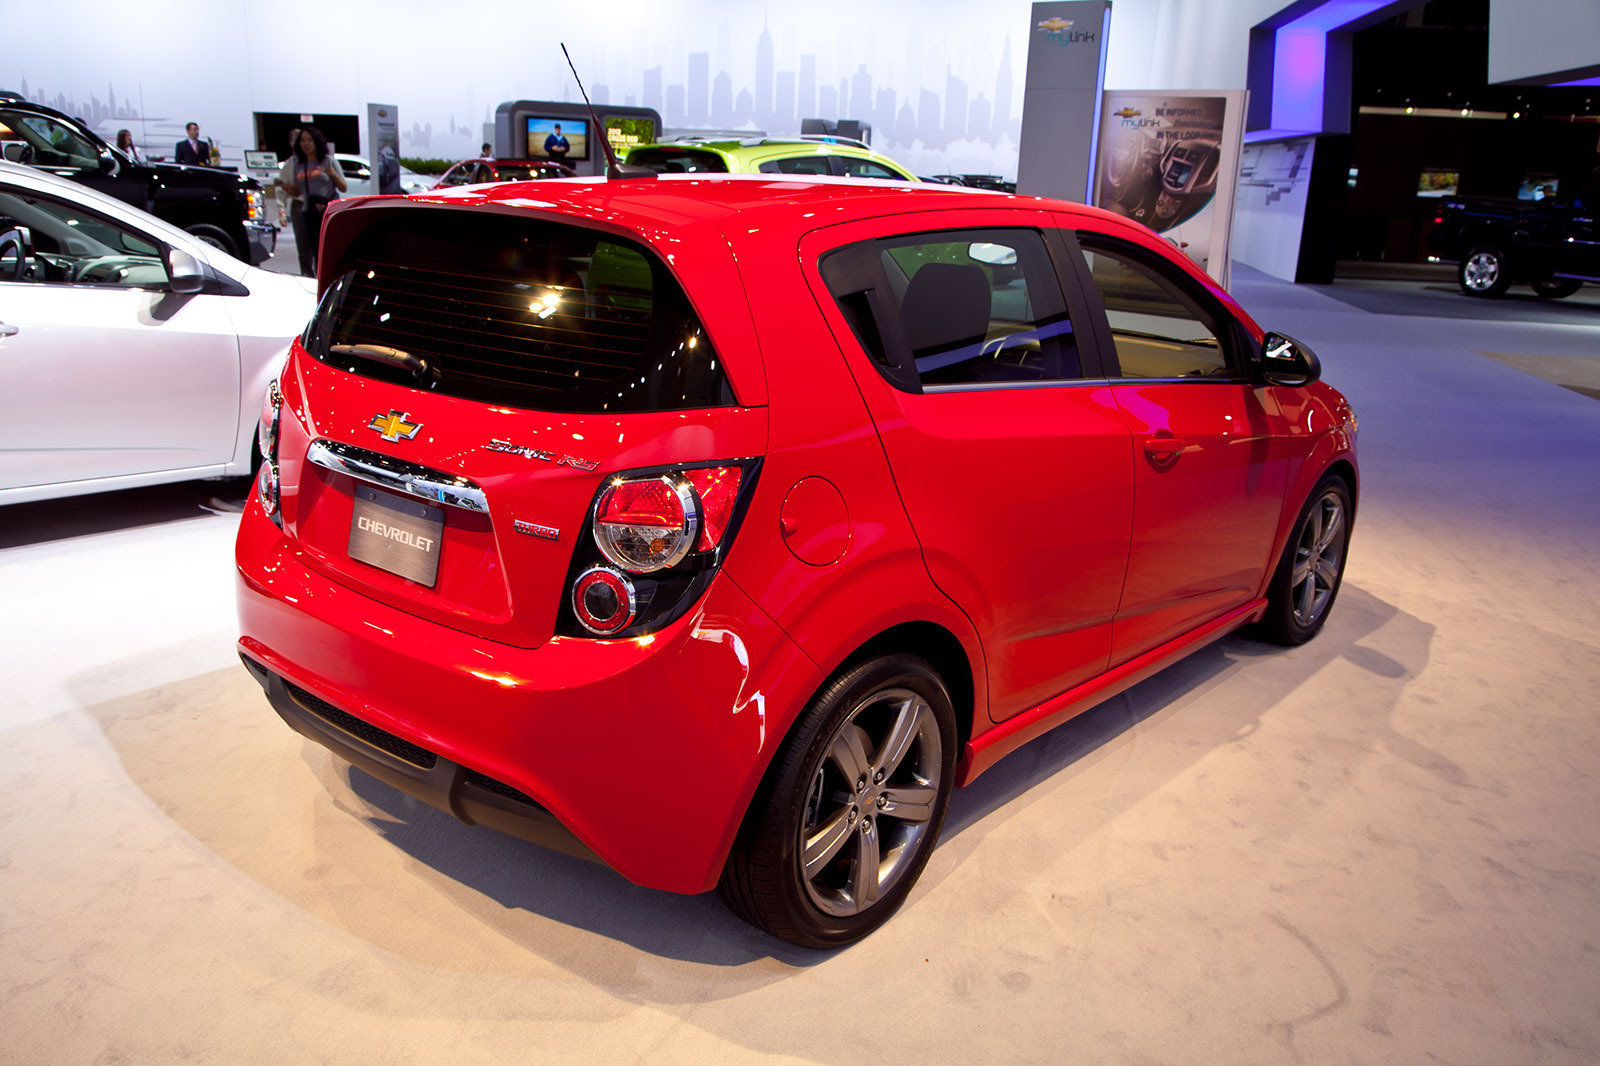 2013 chevrolet sonic rs picture 449883 car review top speed. Black Bedroom Furniture Sets. Home Design Ideas